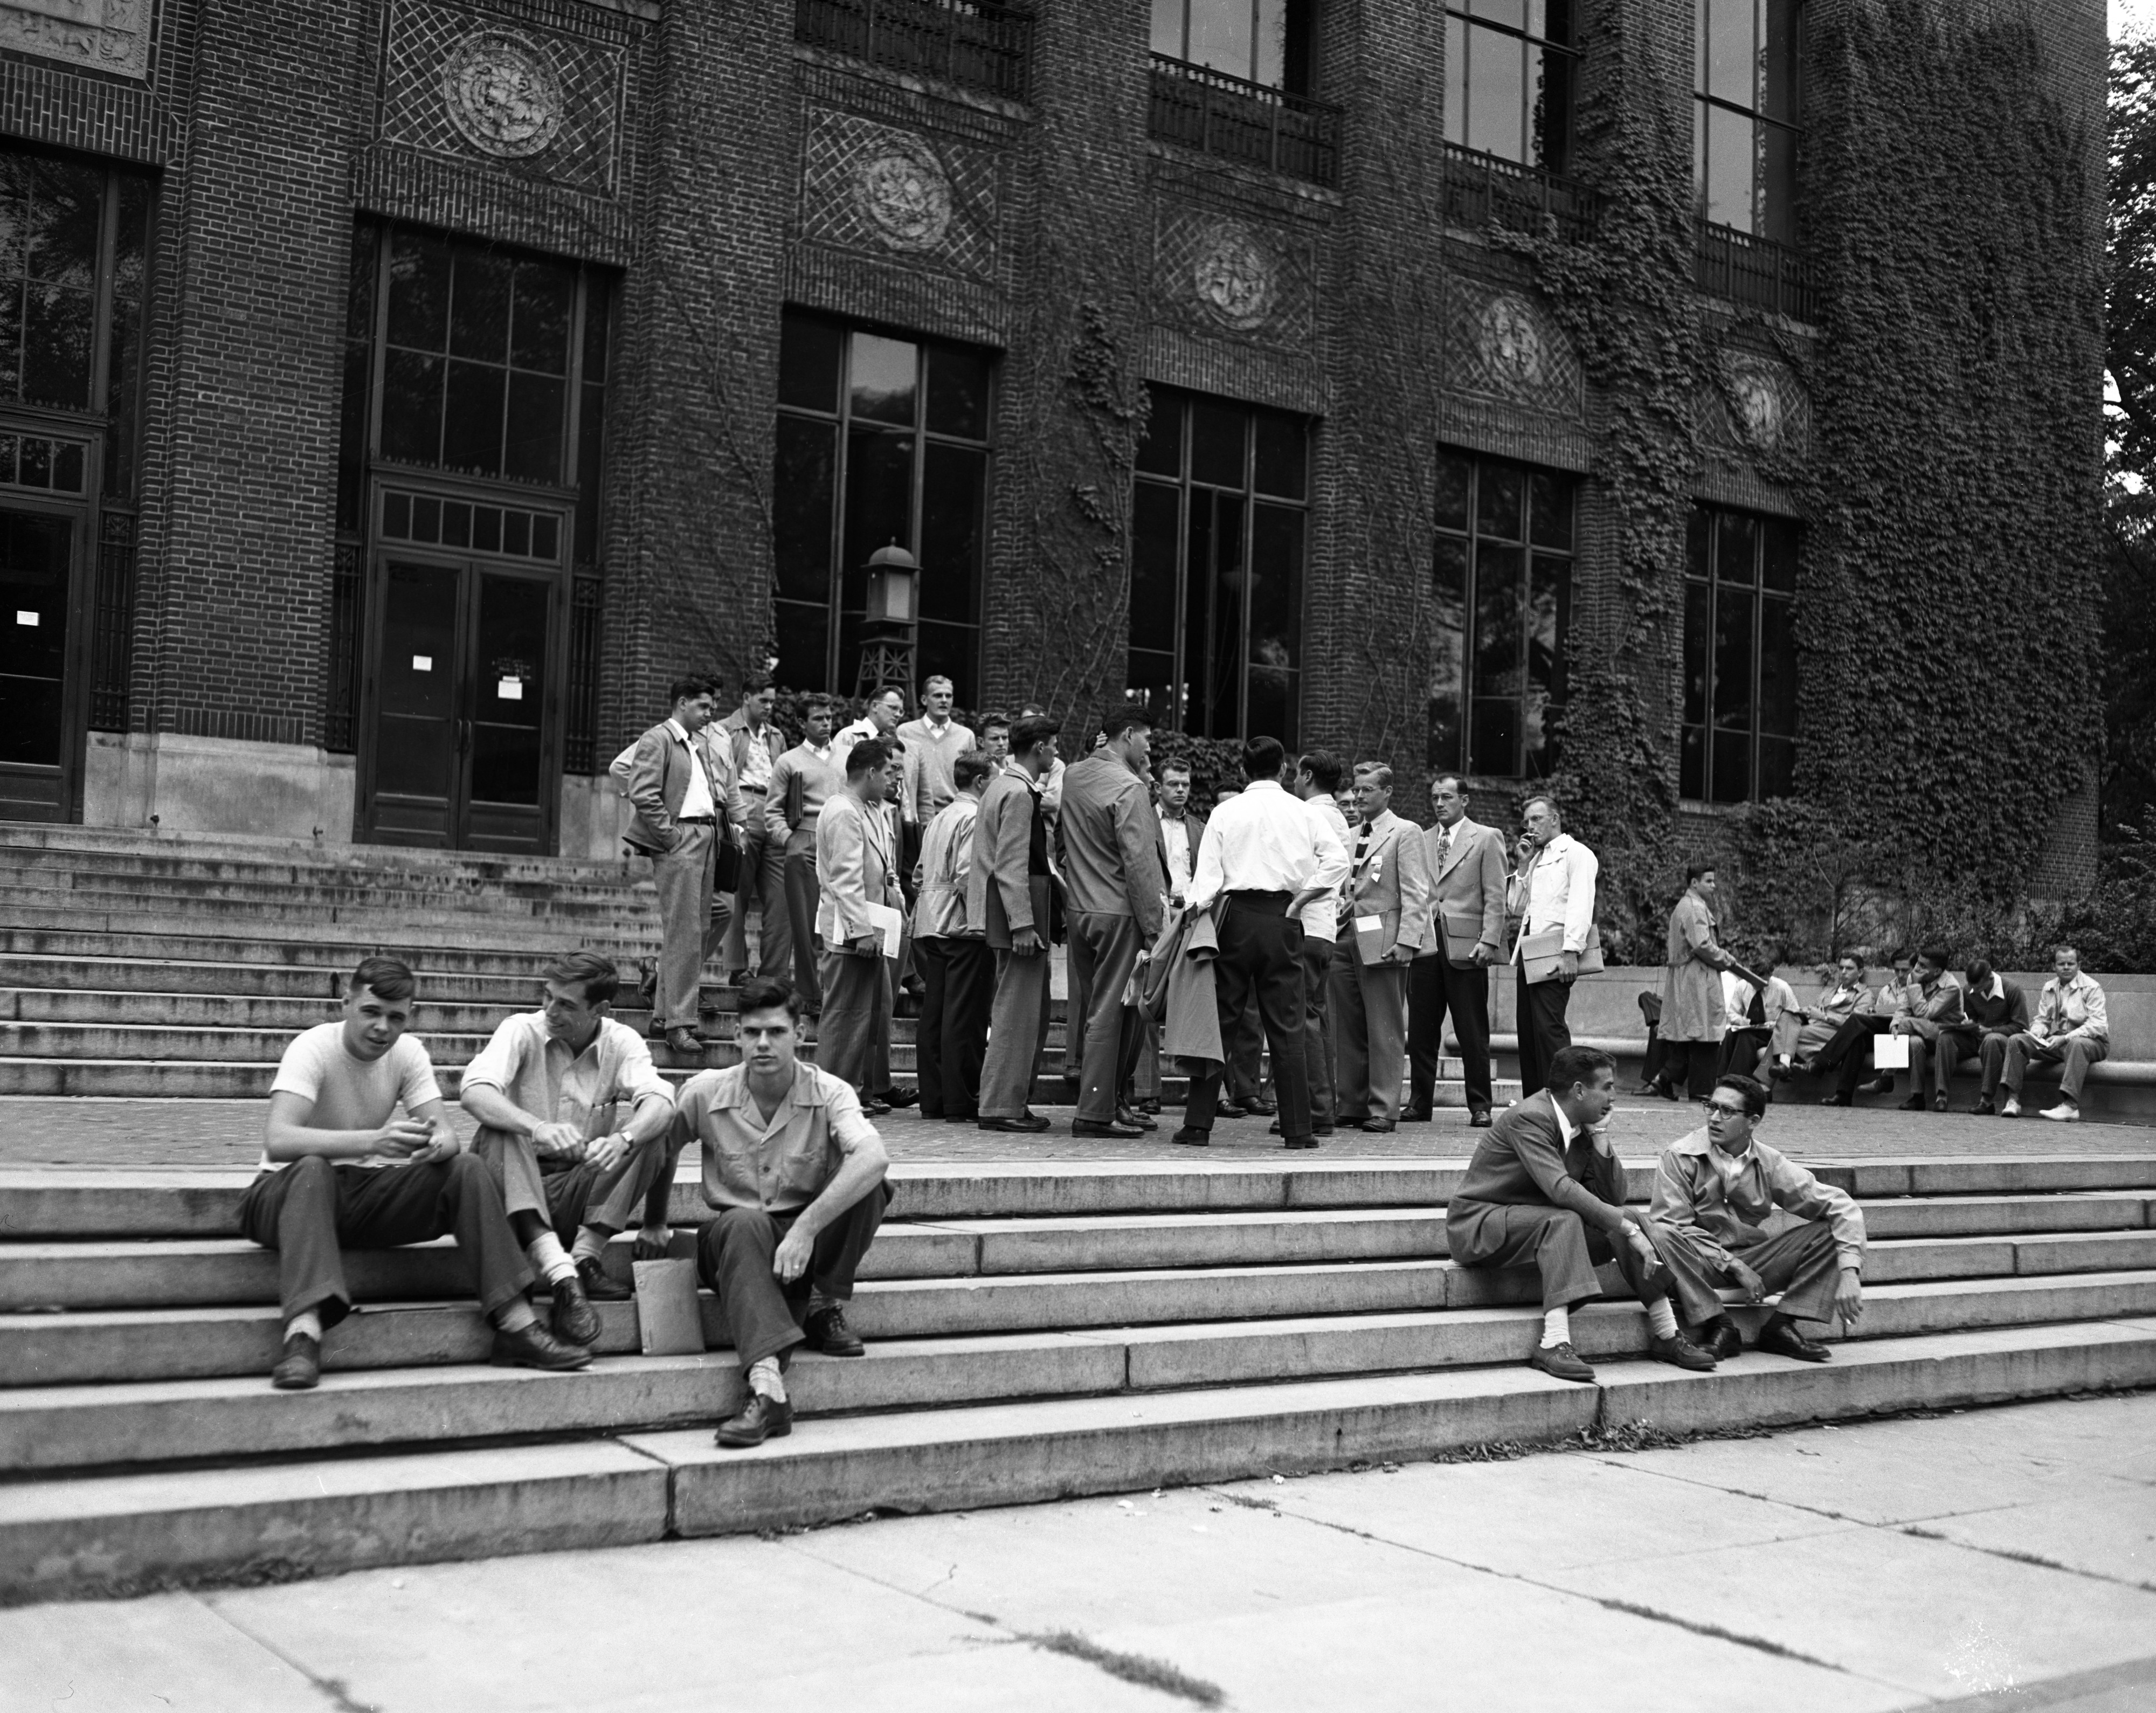 University of Michigan students on Graduate Library steps, October 1948 image